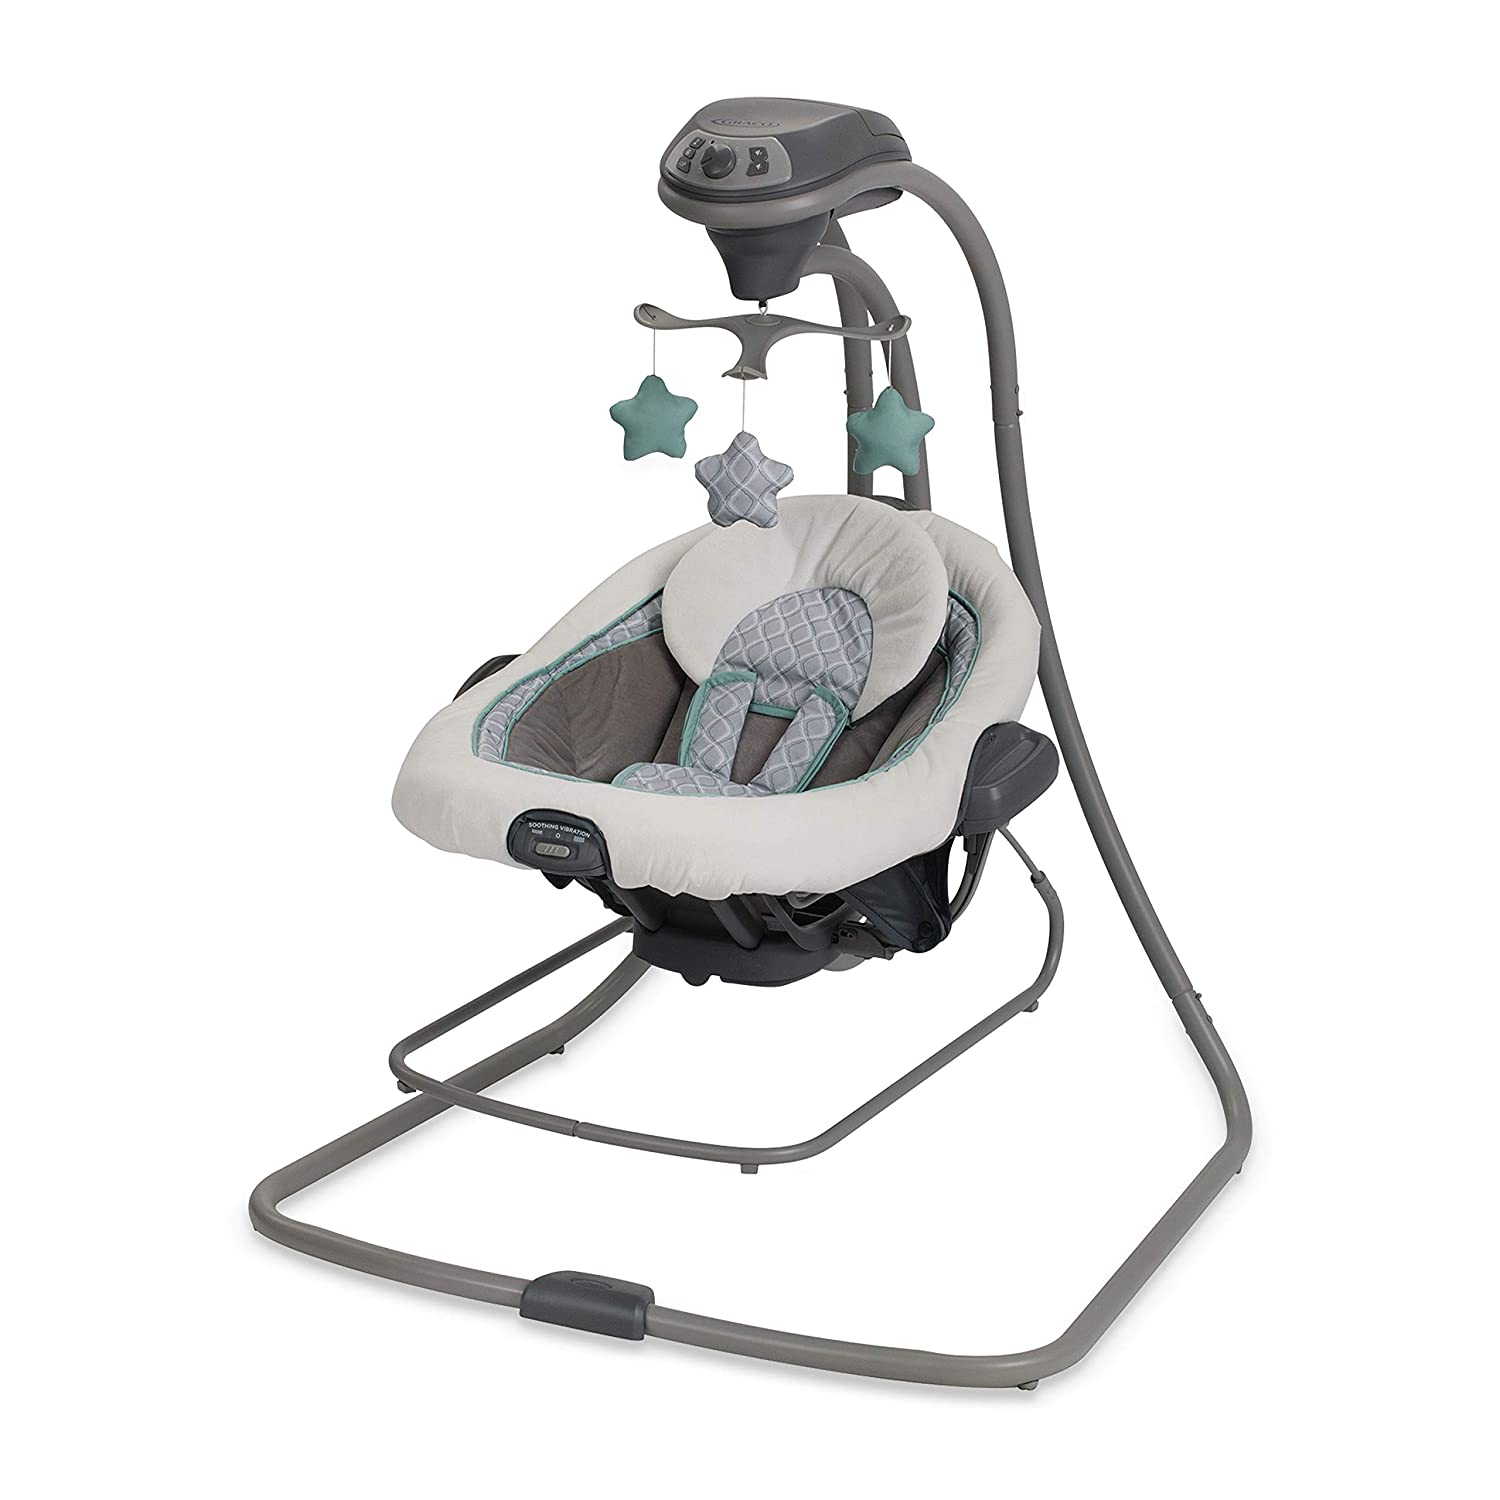 71MiwiSdq9L. SL1500 The Best Baby Swing with Lights and Music in 2021